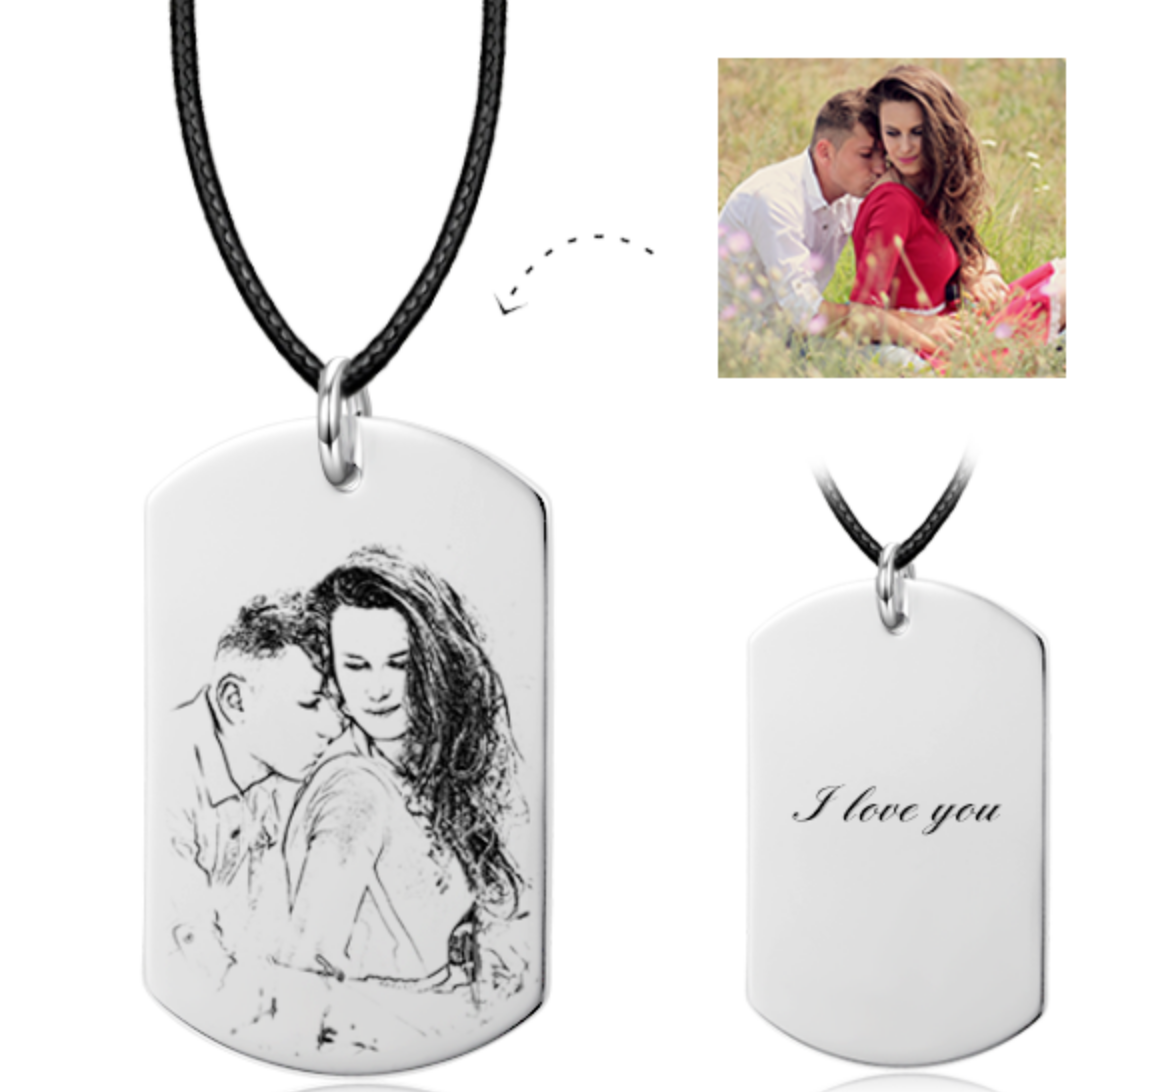 Personalized Engraved Jewelry | YAFEINI